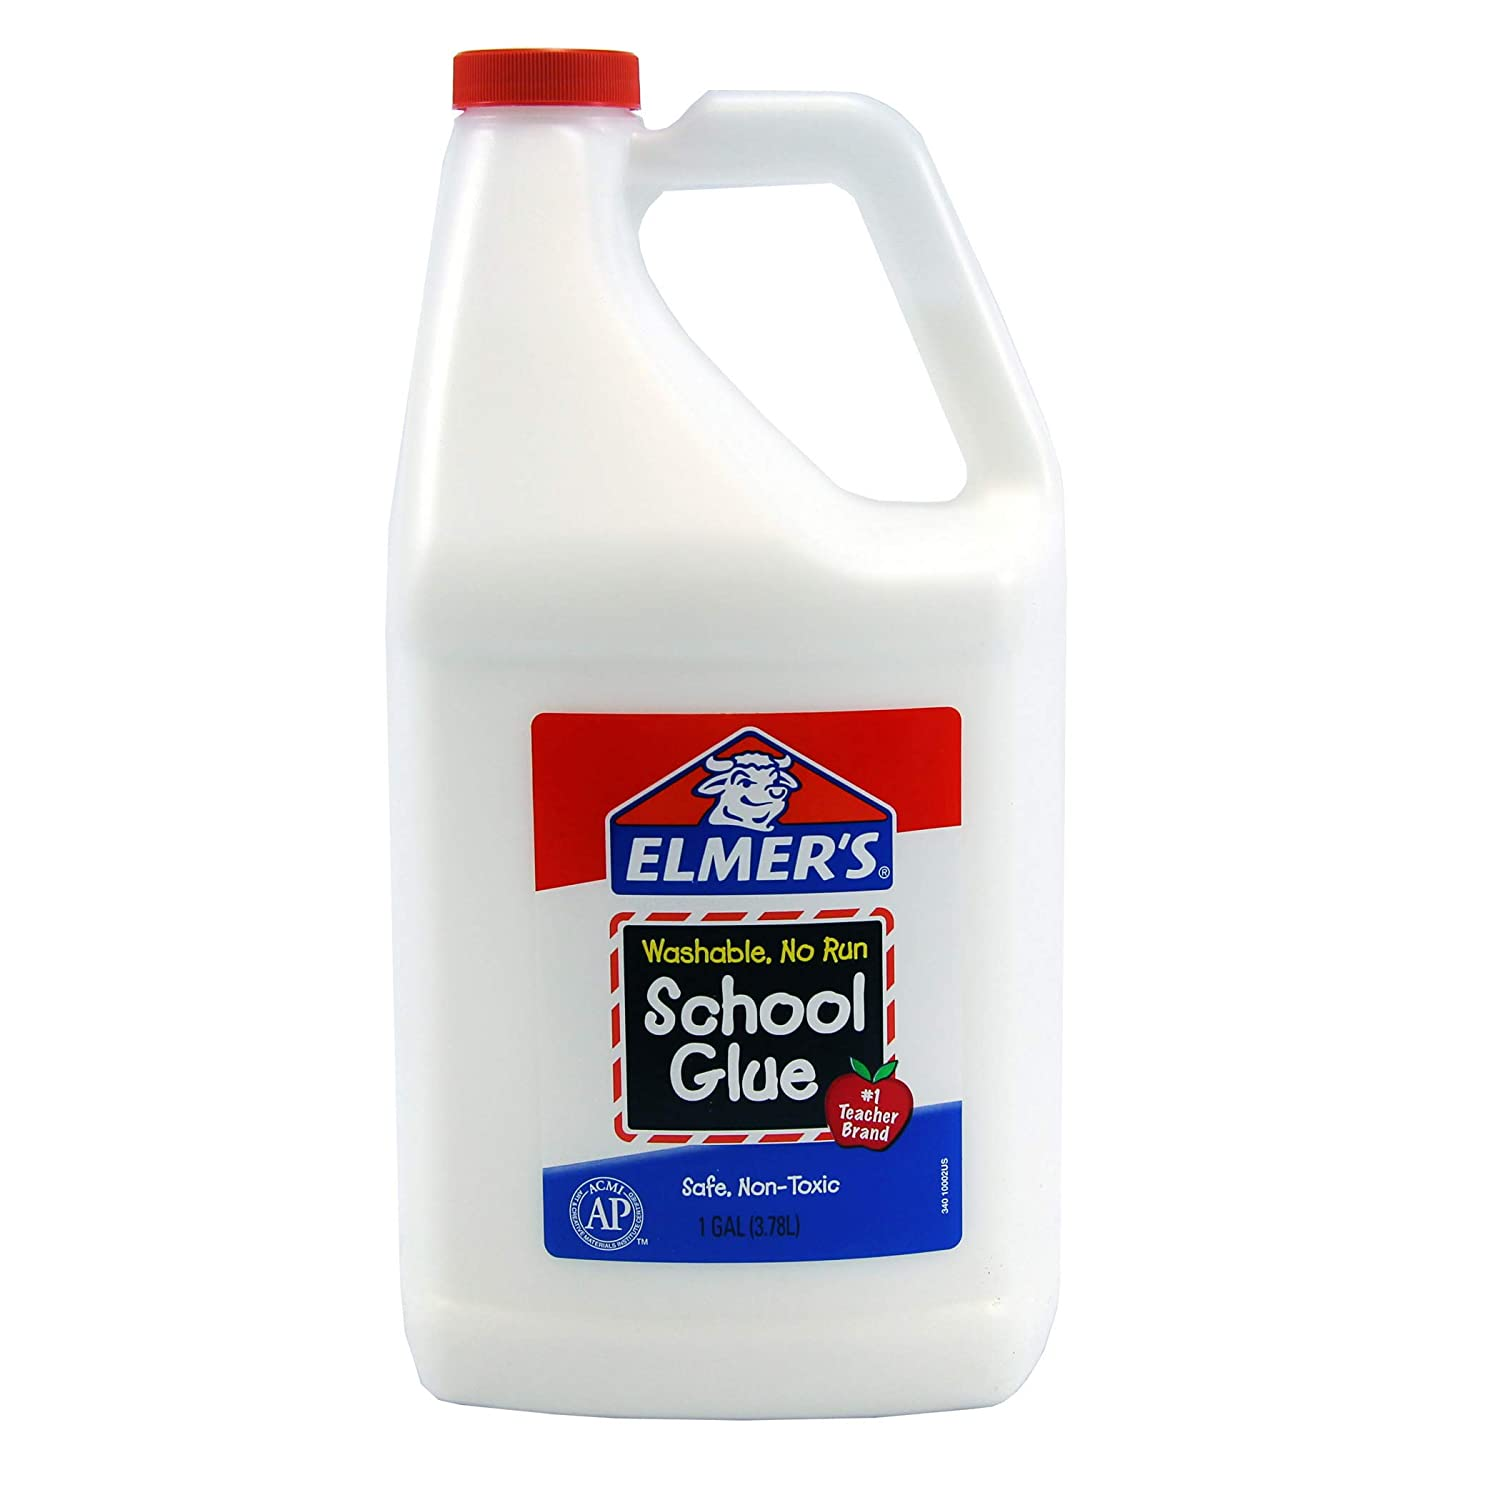 Elmer's Washable School Glue-1Gal Elmer' s Products Inc E340